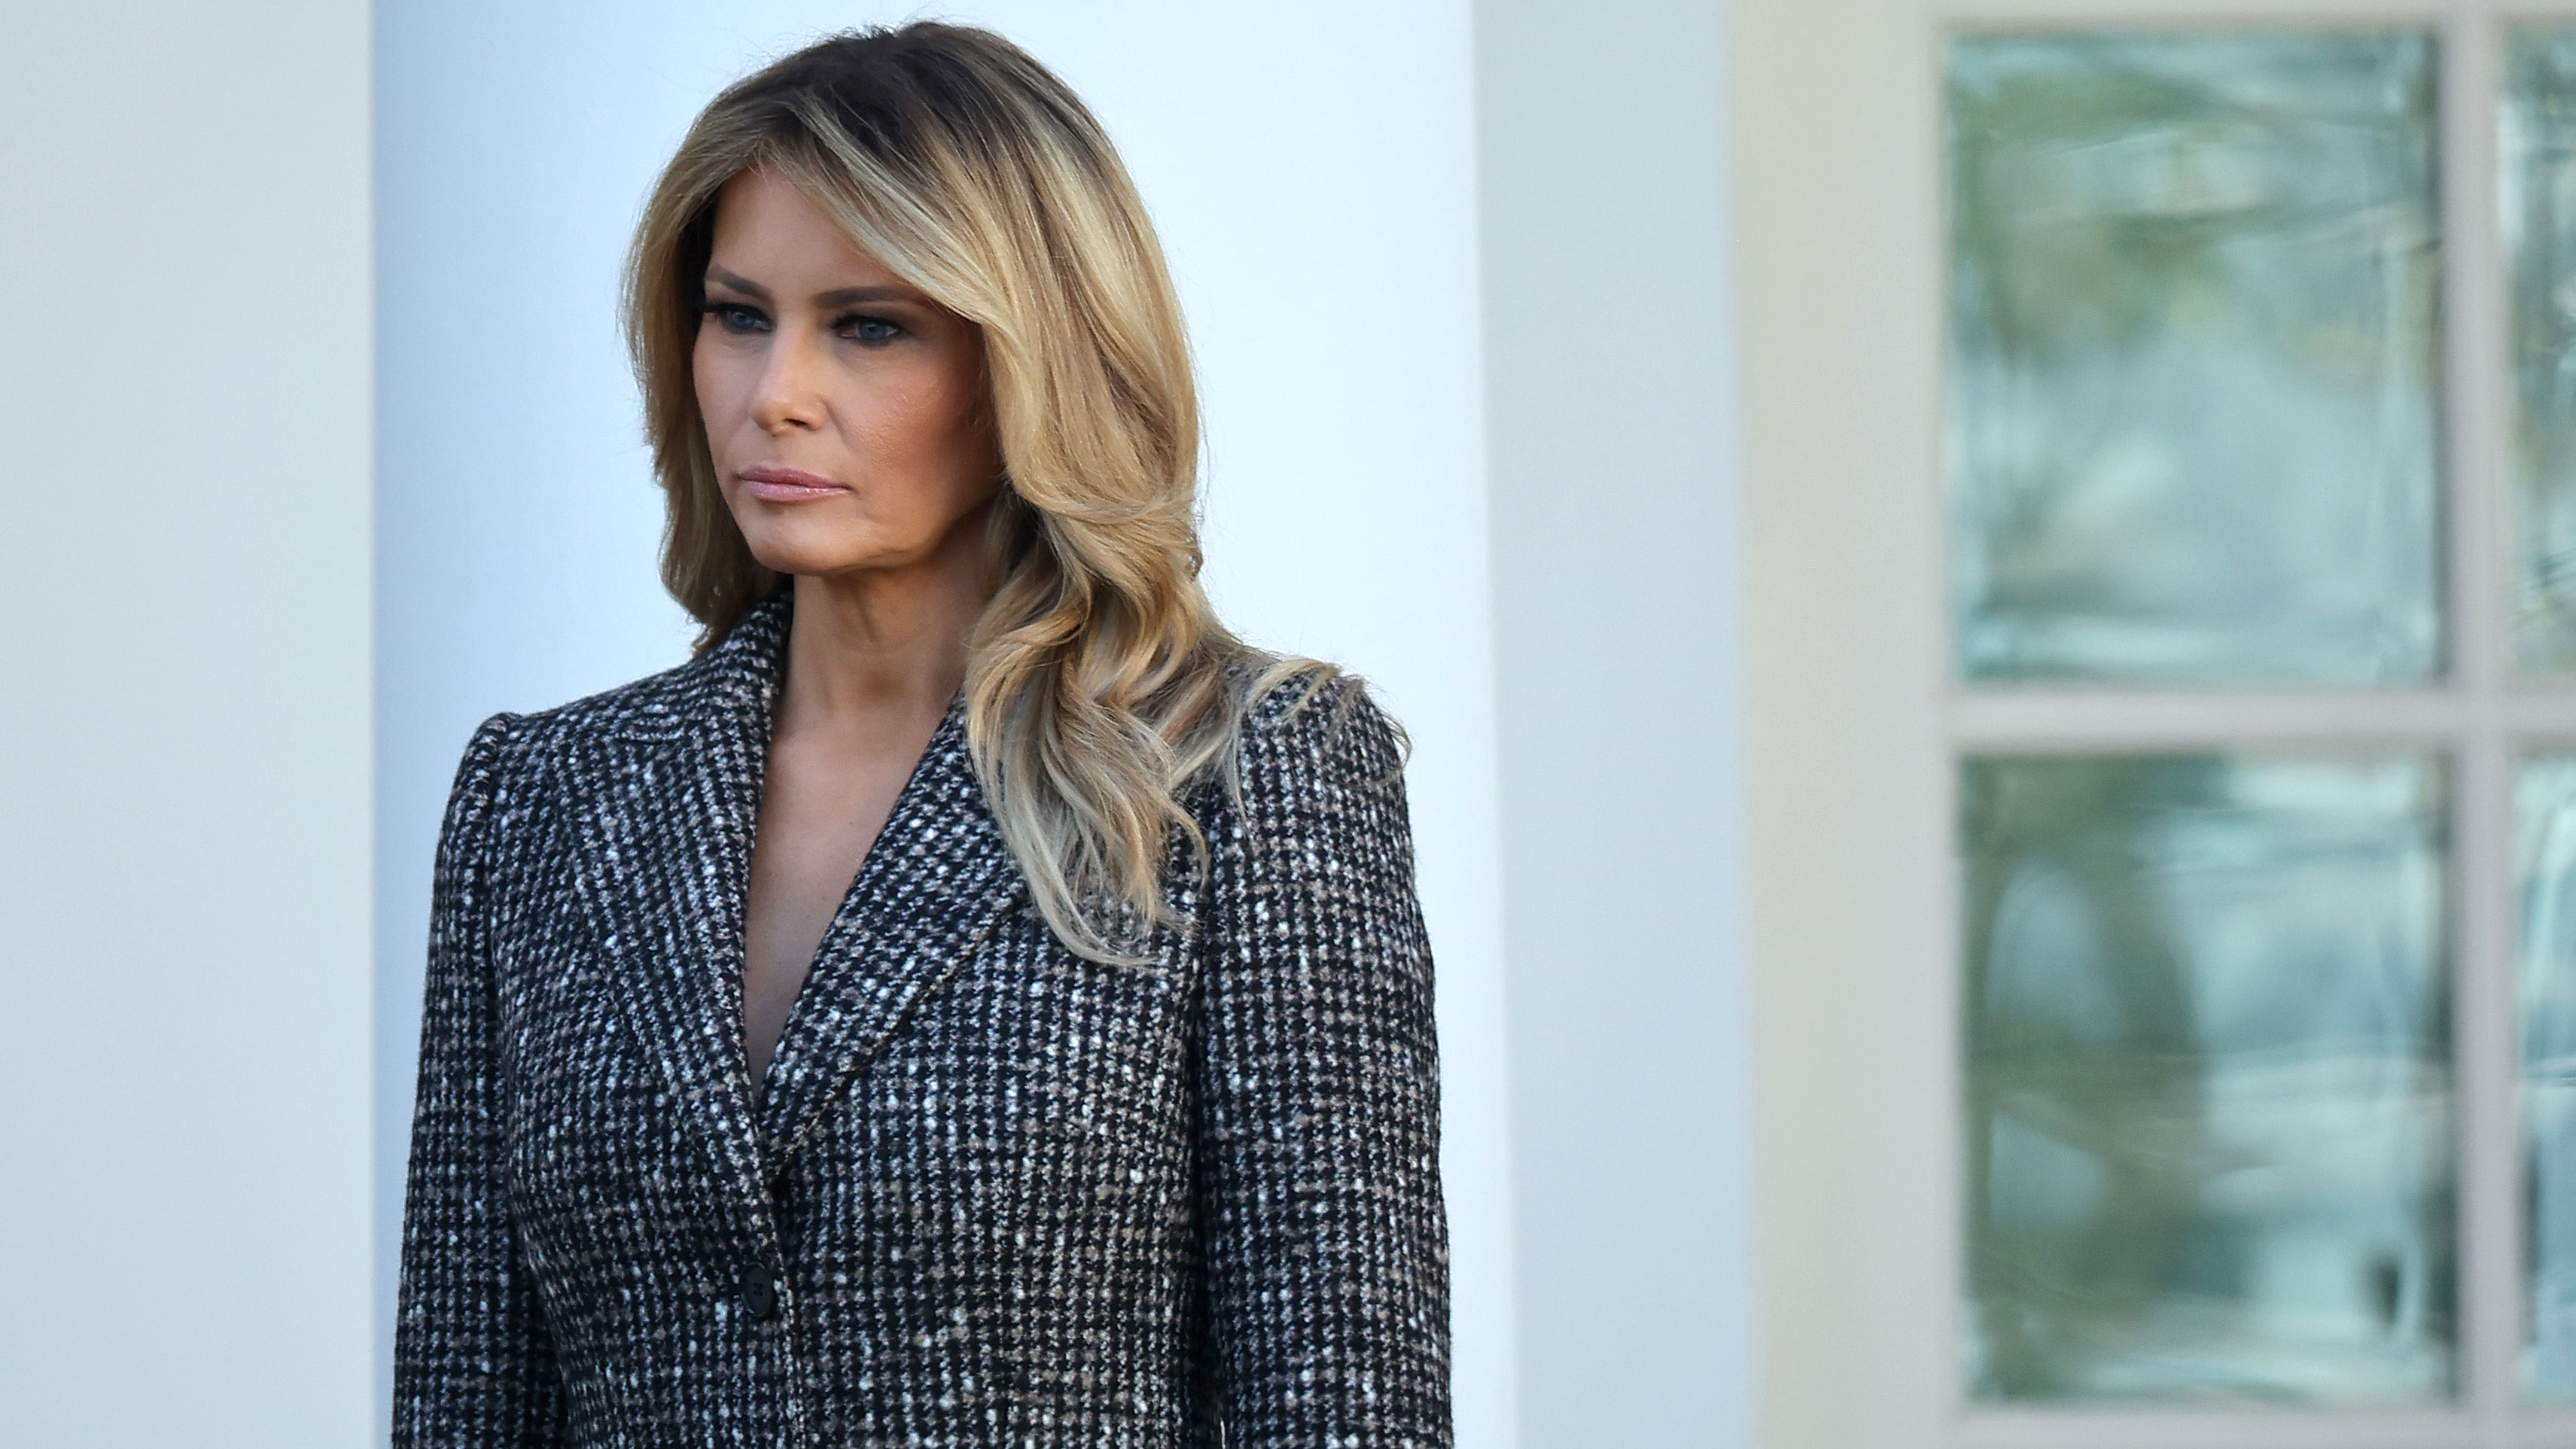 Melania Trump outsourced writing her own 'thank you' notes to the White House residence staff